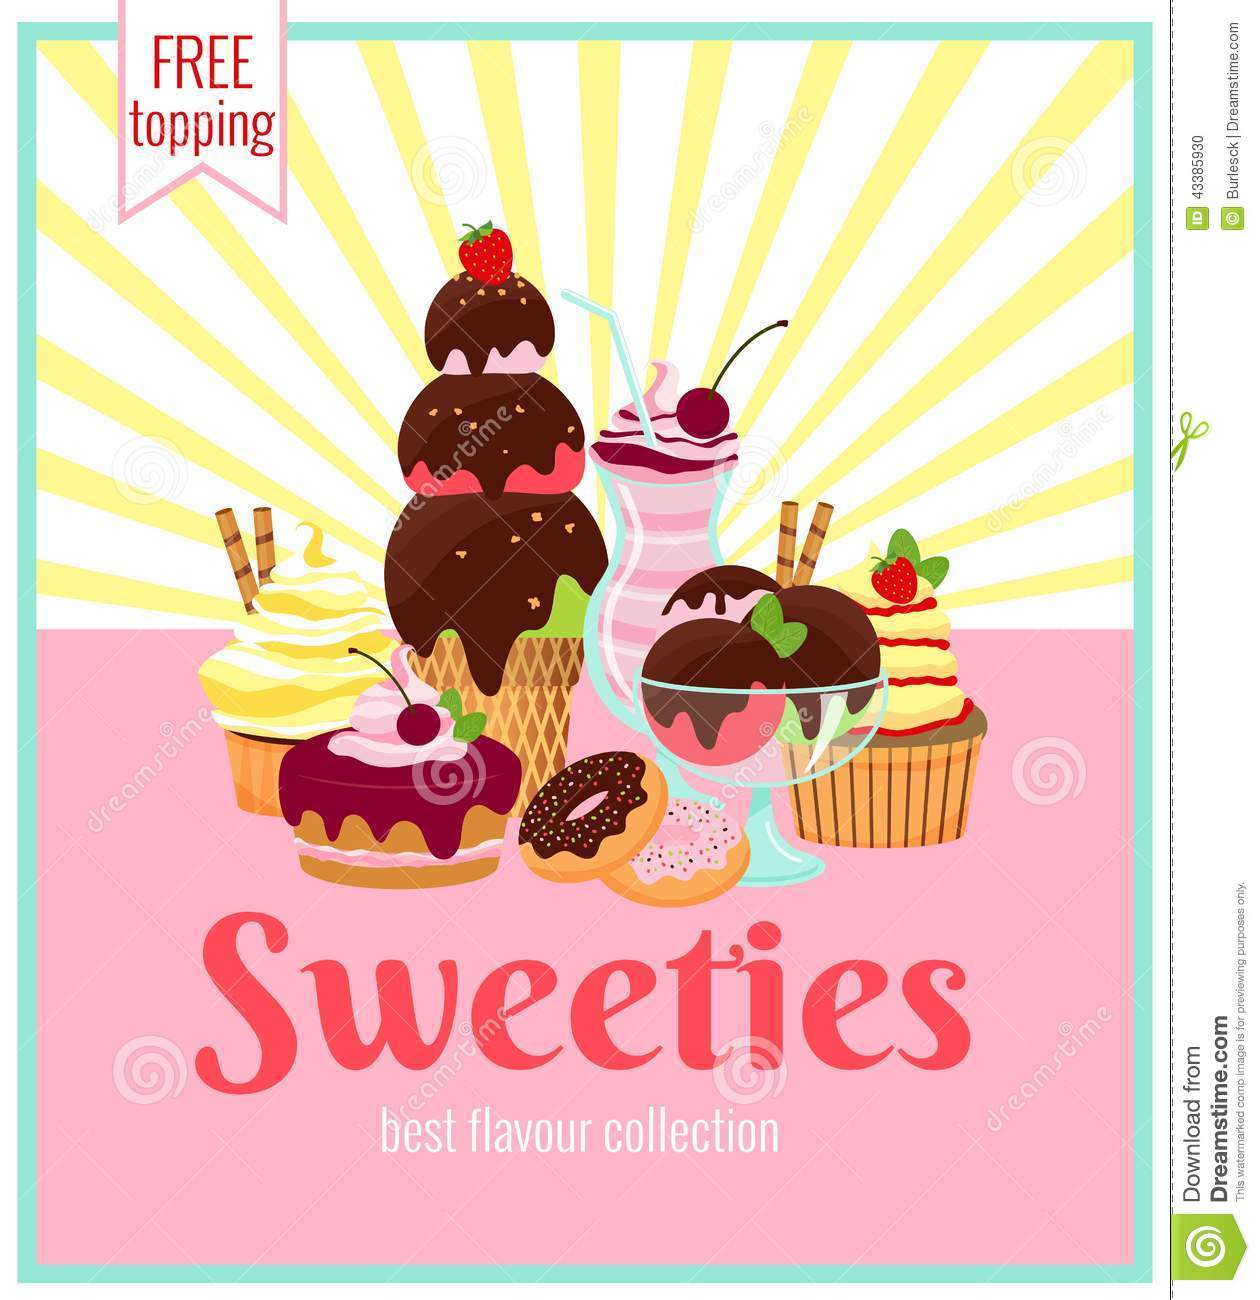 Sweeties retro poster design with a colorful array of ice cream cakes ...